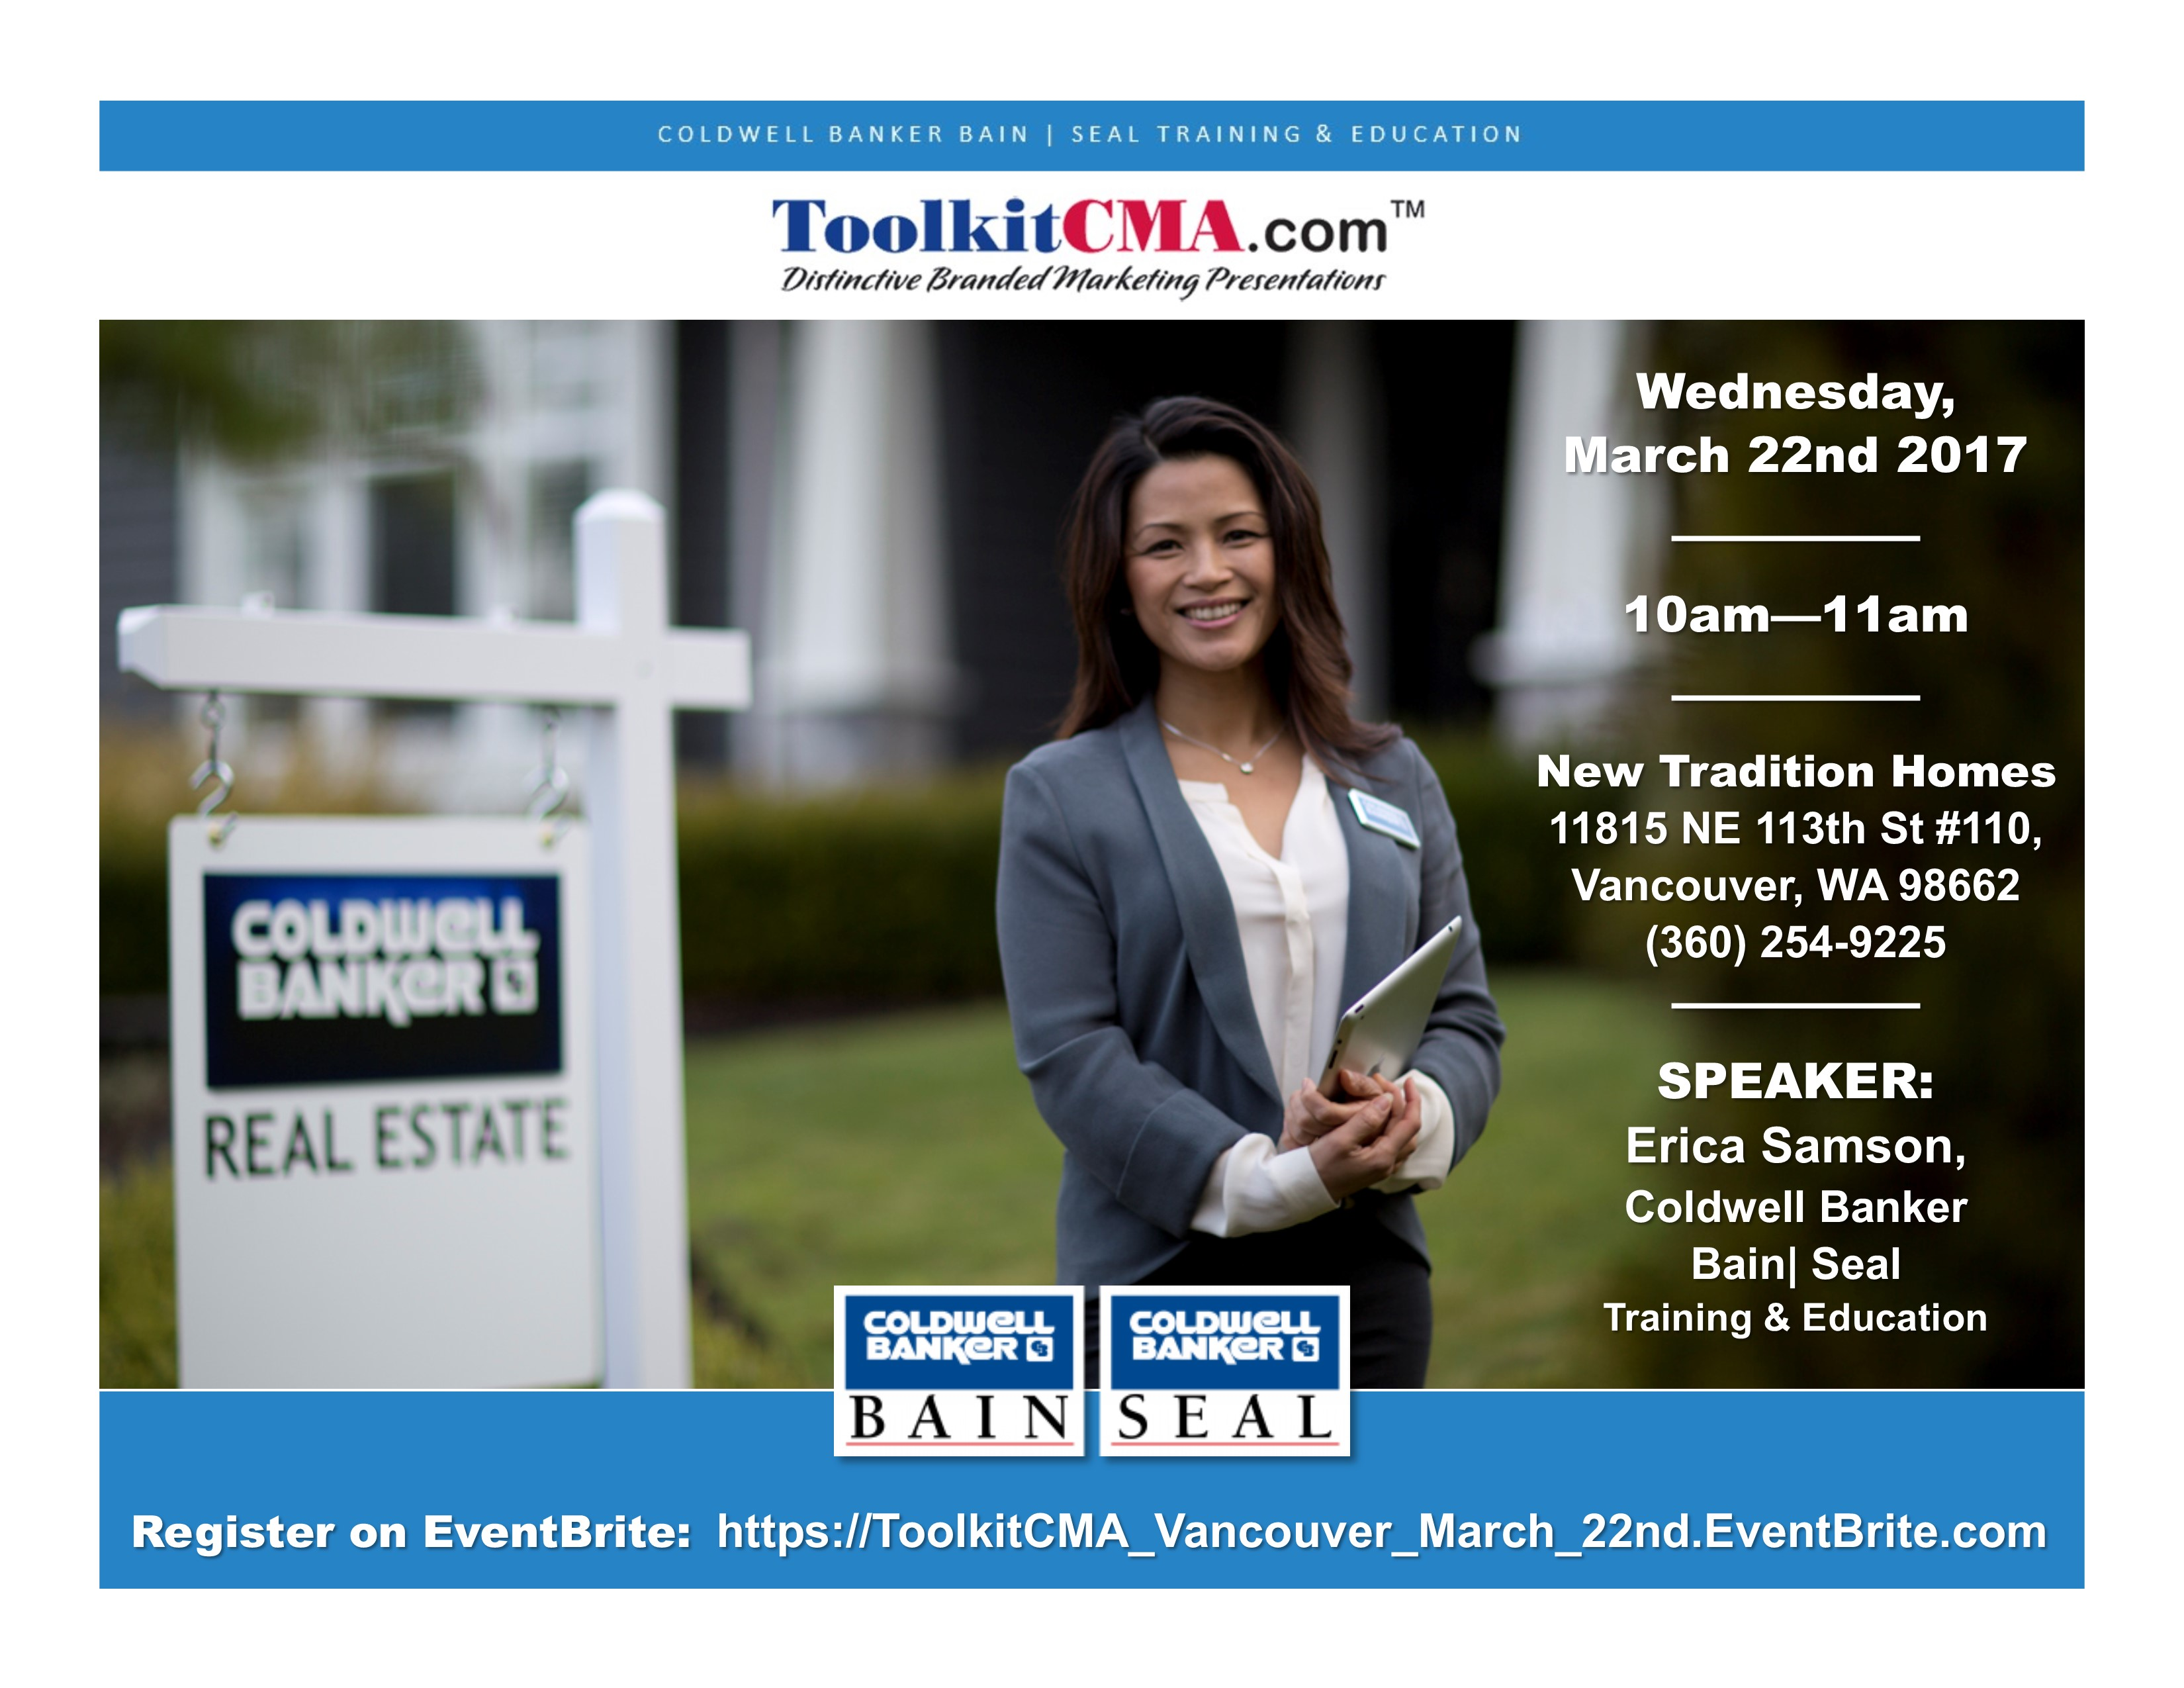 ToolkitCMA_Vancouver_March_22nd_2017